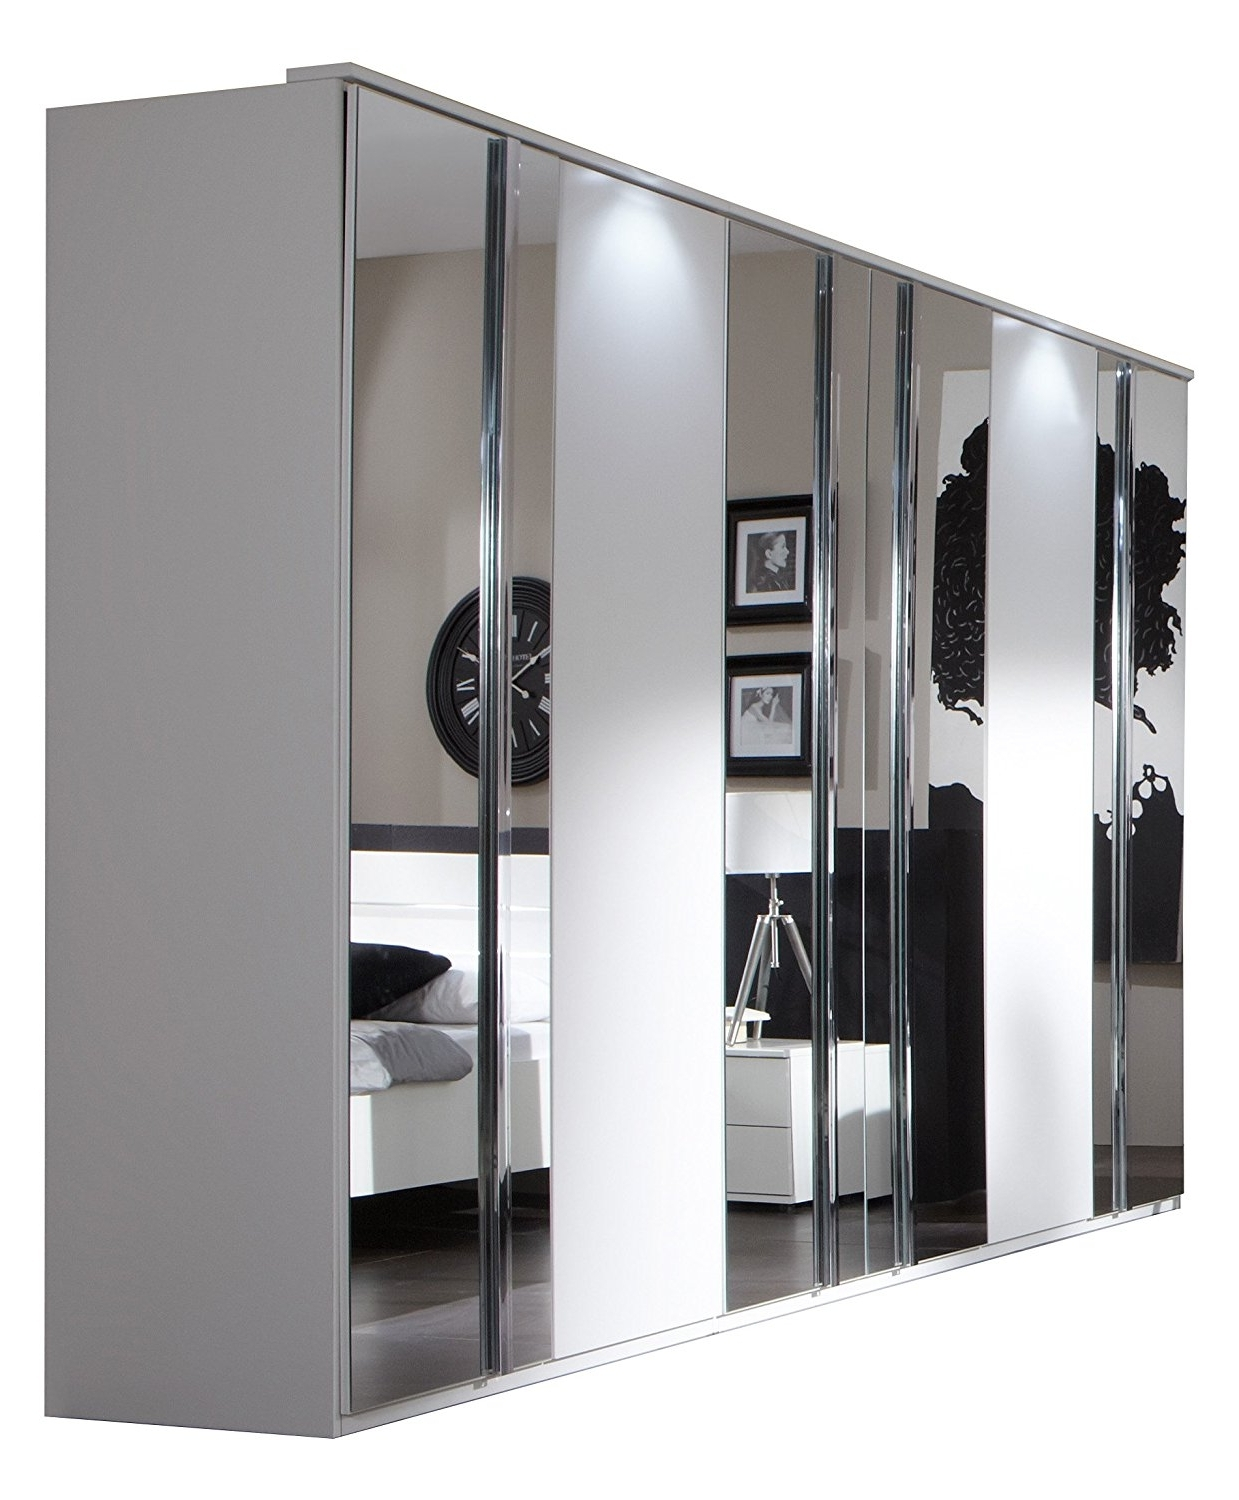 Best And Newest Black Wardrobes With Mirror Within Davos 6 Door Wardrobe: Amazon.co (View 2 of 15)